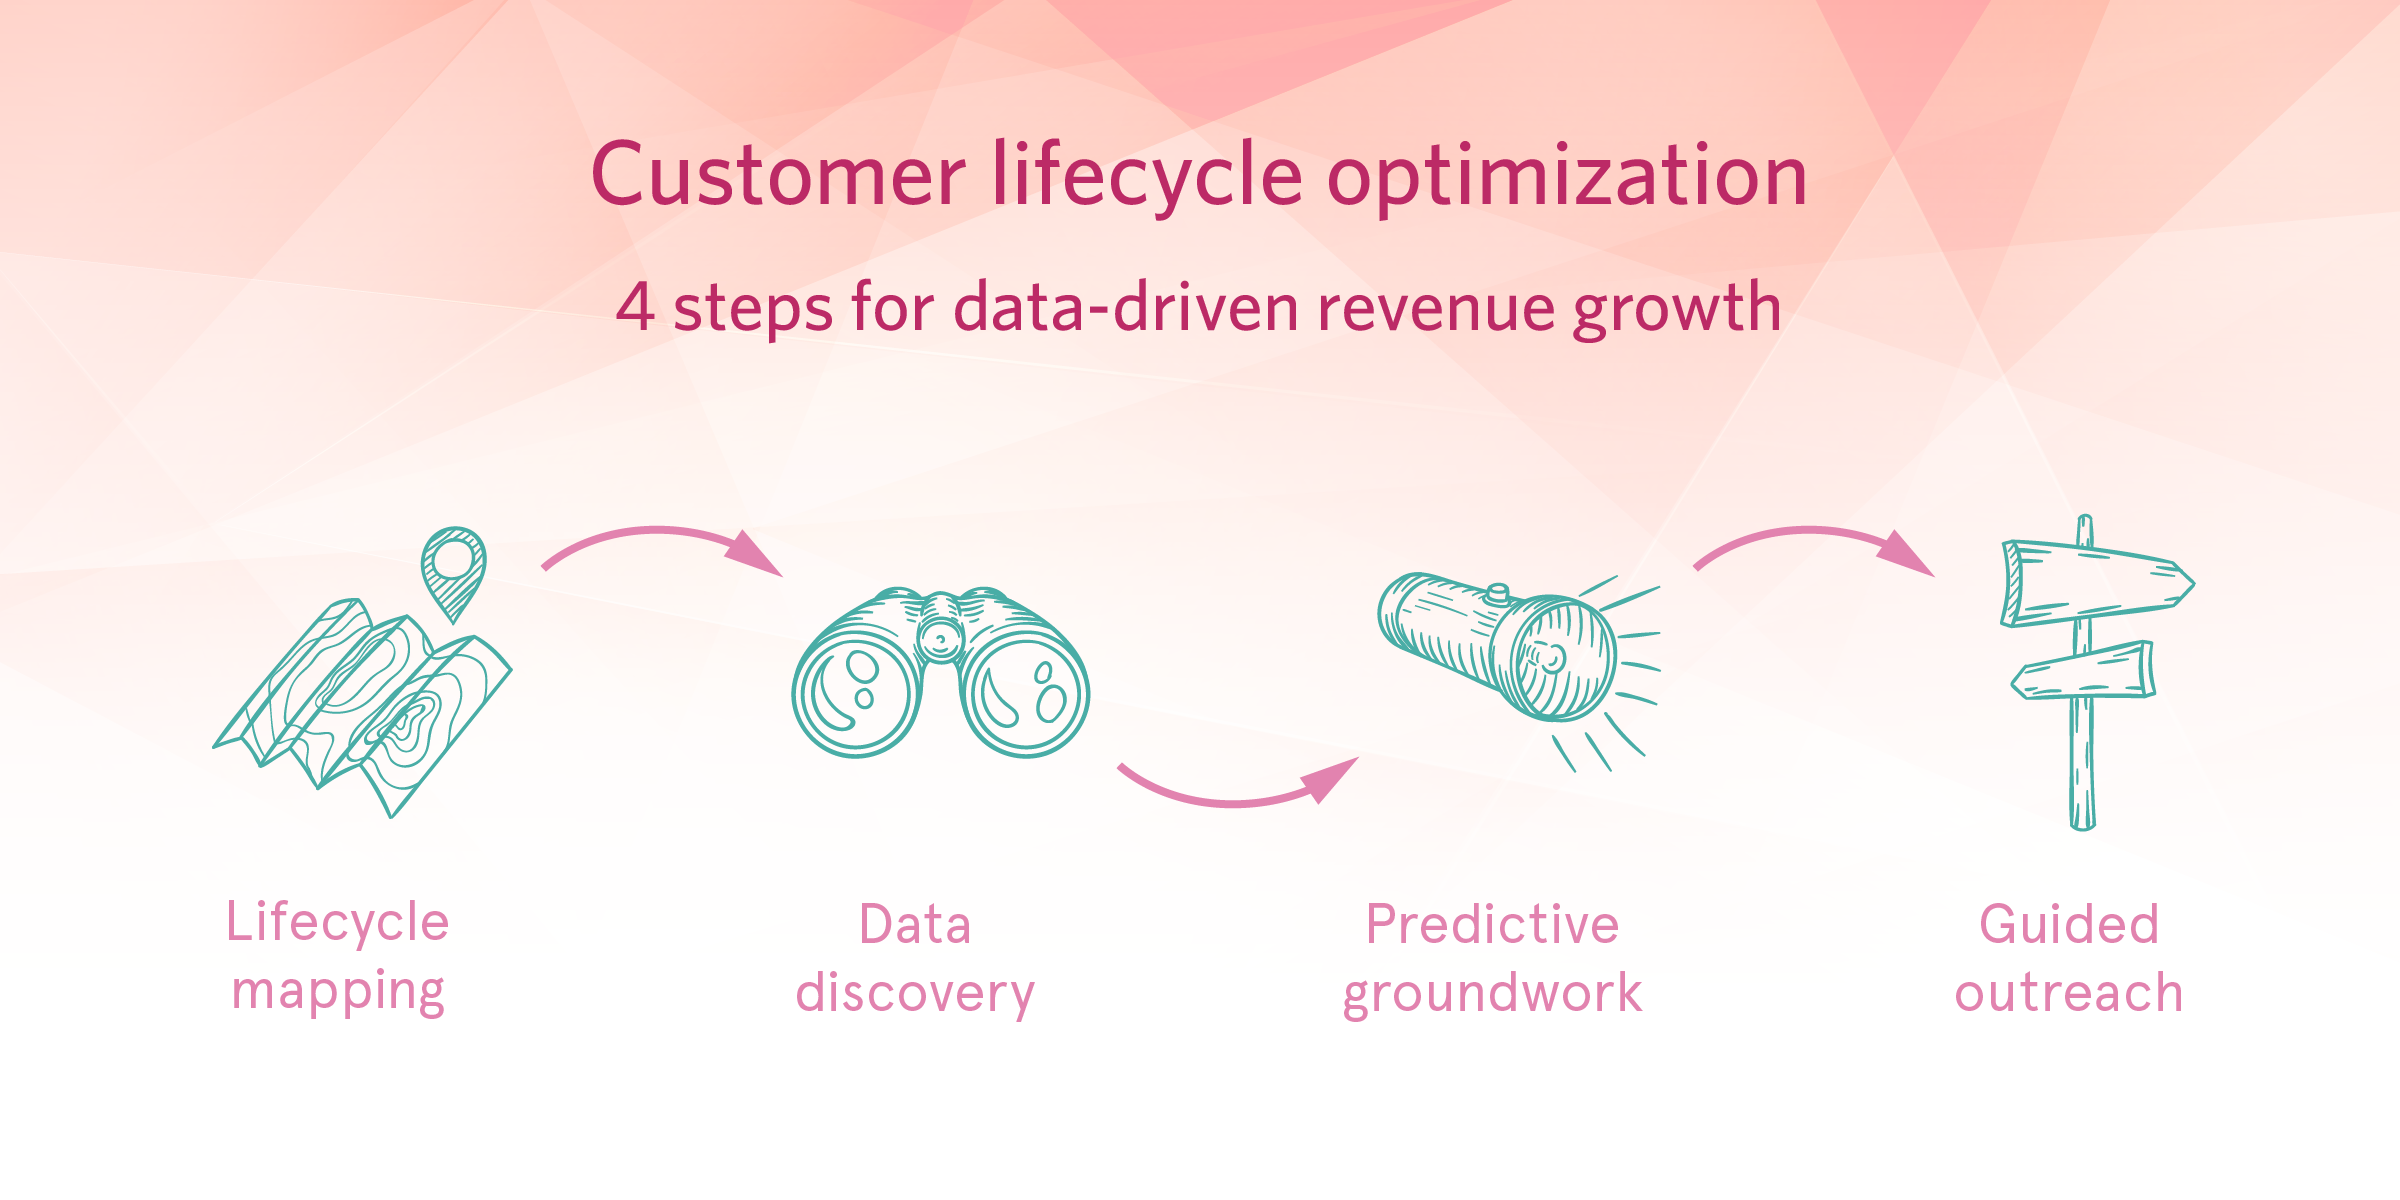 Predicting customer lifecycle outcomes with data analysis and machine learning